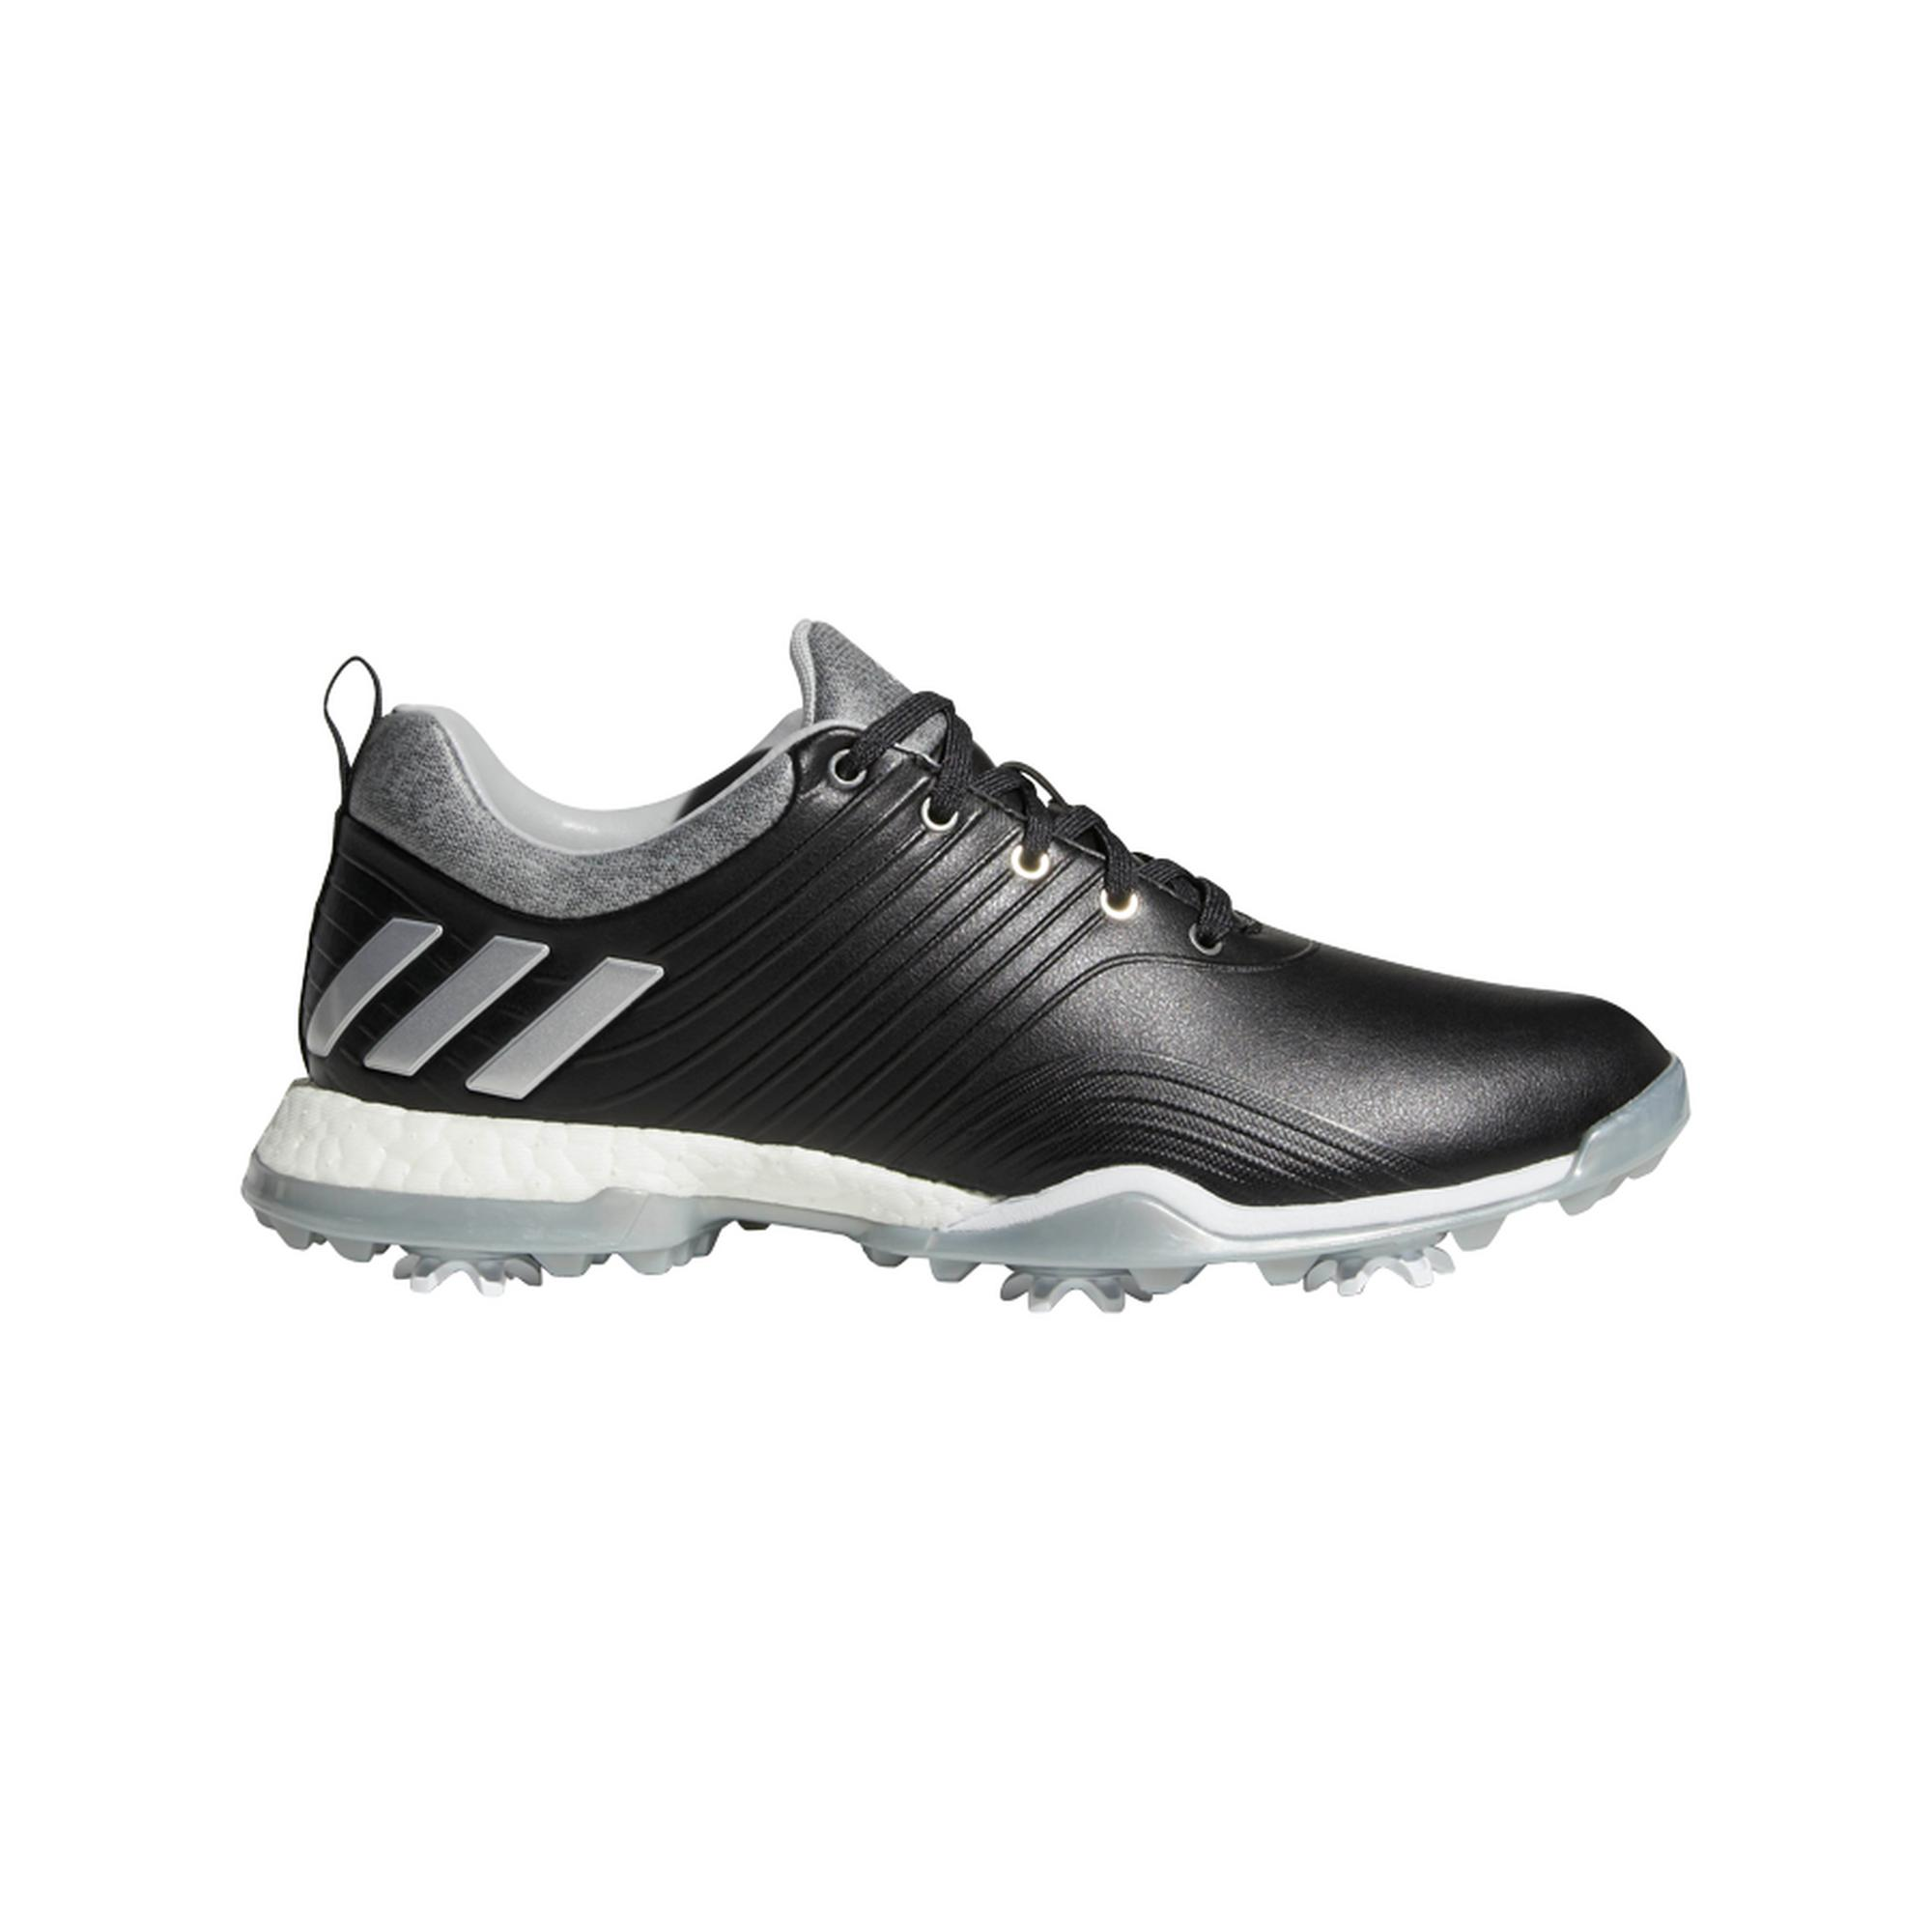 Women's Adipower 4ORGED - BLACK/GREY/WHITE